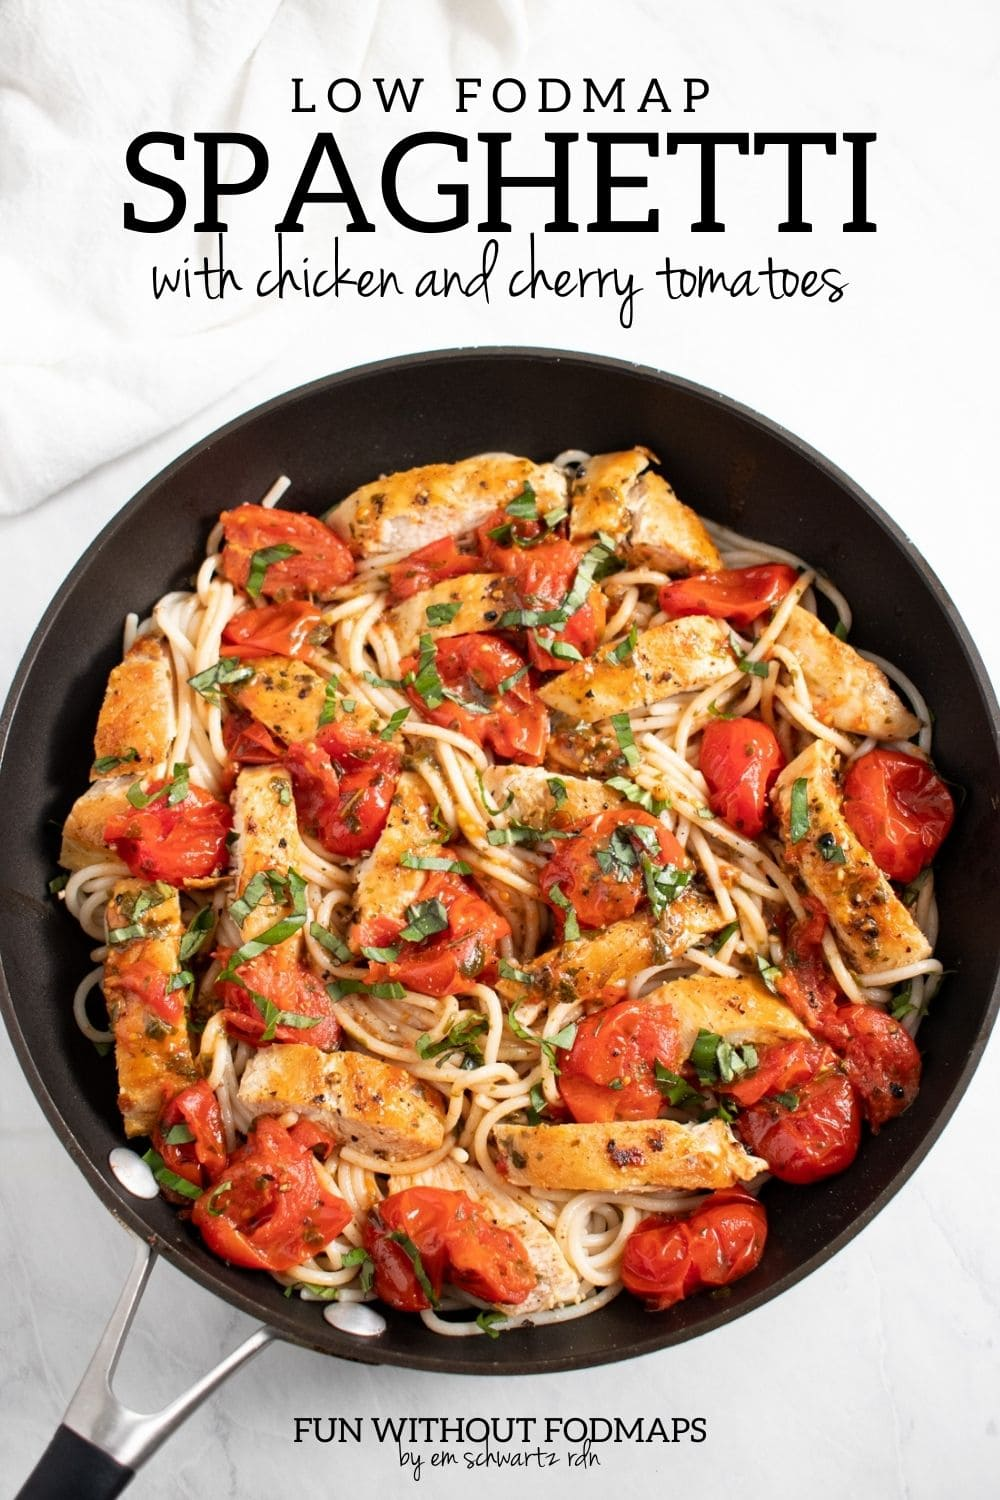 """Looking down at a skillet filled with a cooked pasta dish dotted with cherry tomatoes, sliced chicken, and fresh basil. In the white space above, black text reads """"Low FODMAP Spaghetti with Chicken and Cherry Tomatoes."""""""